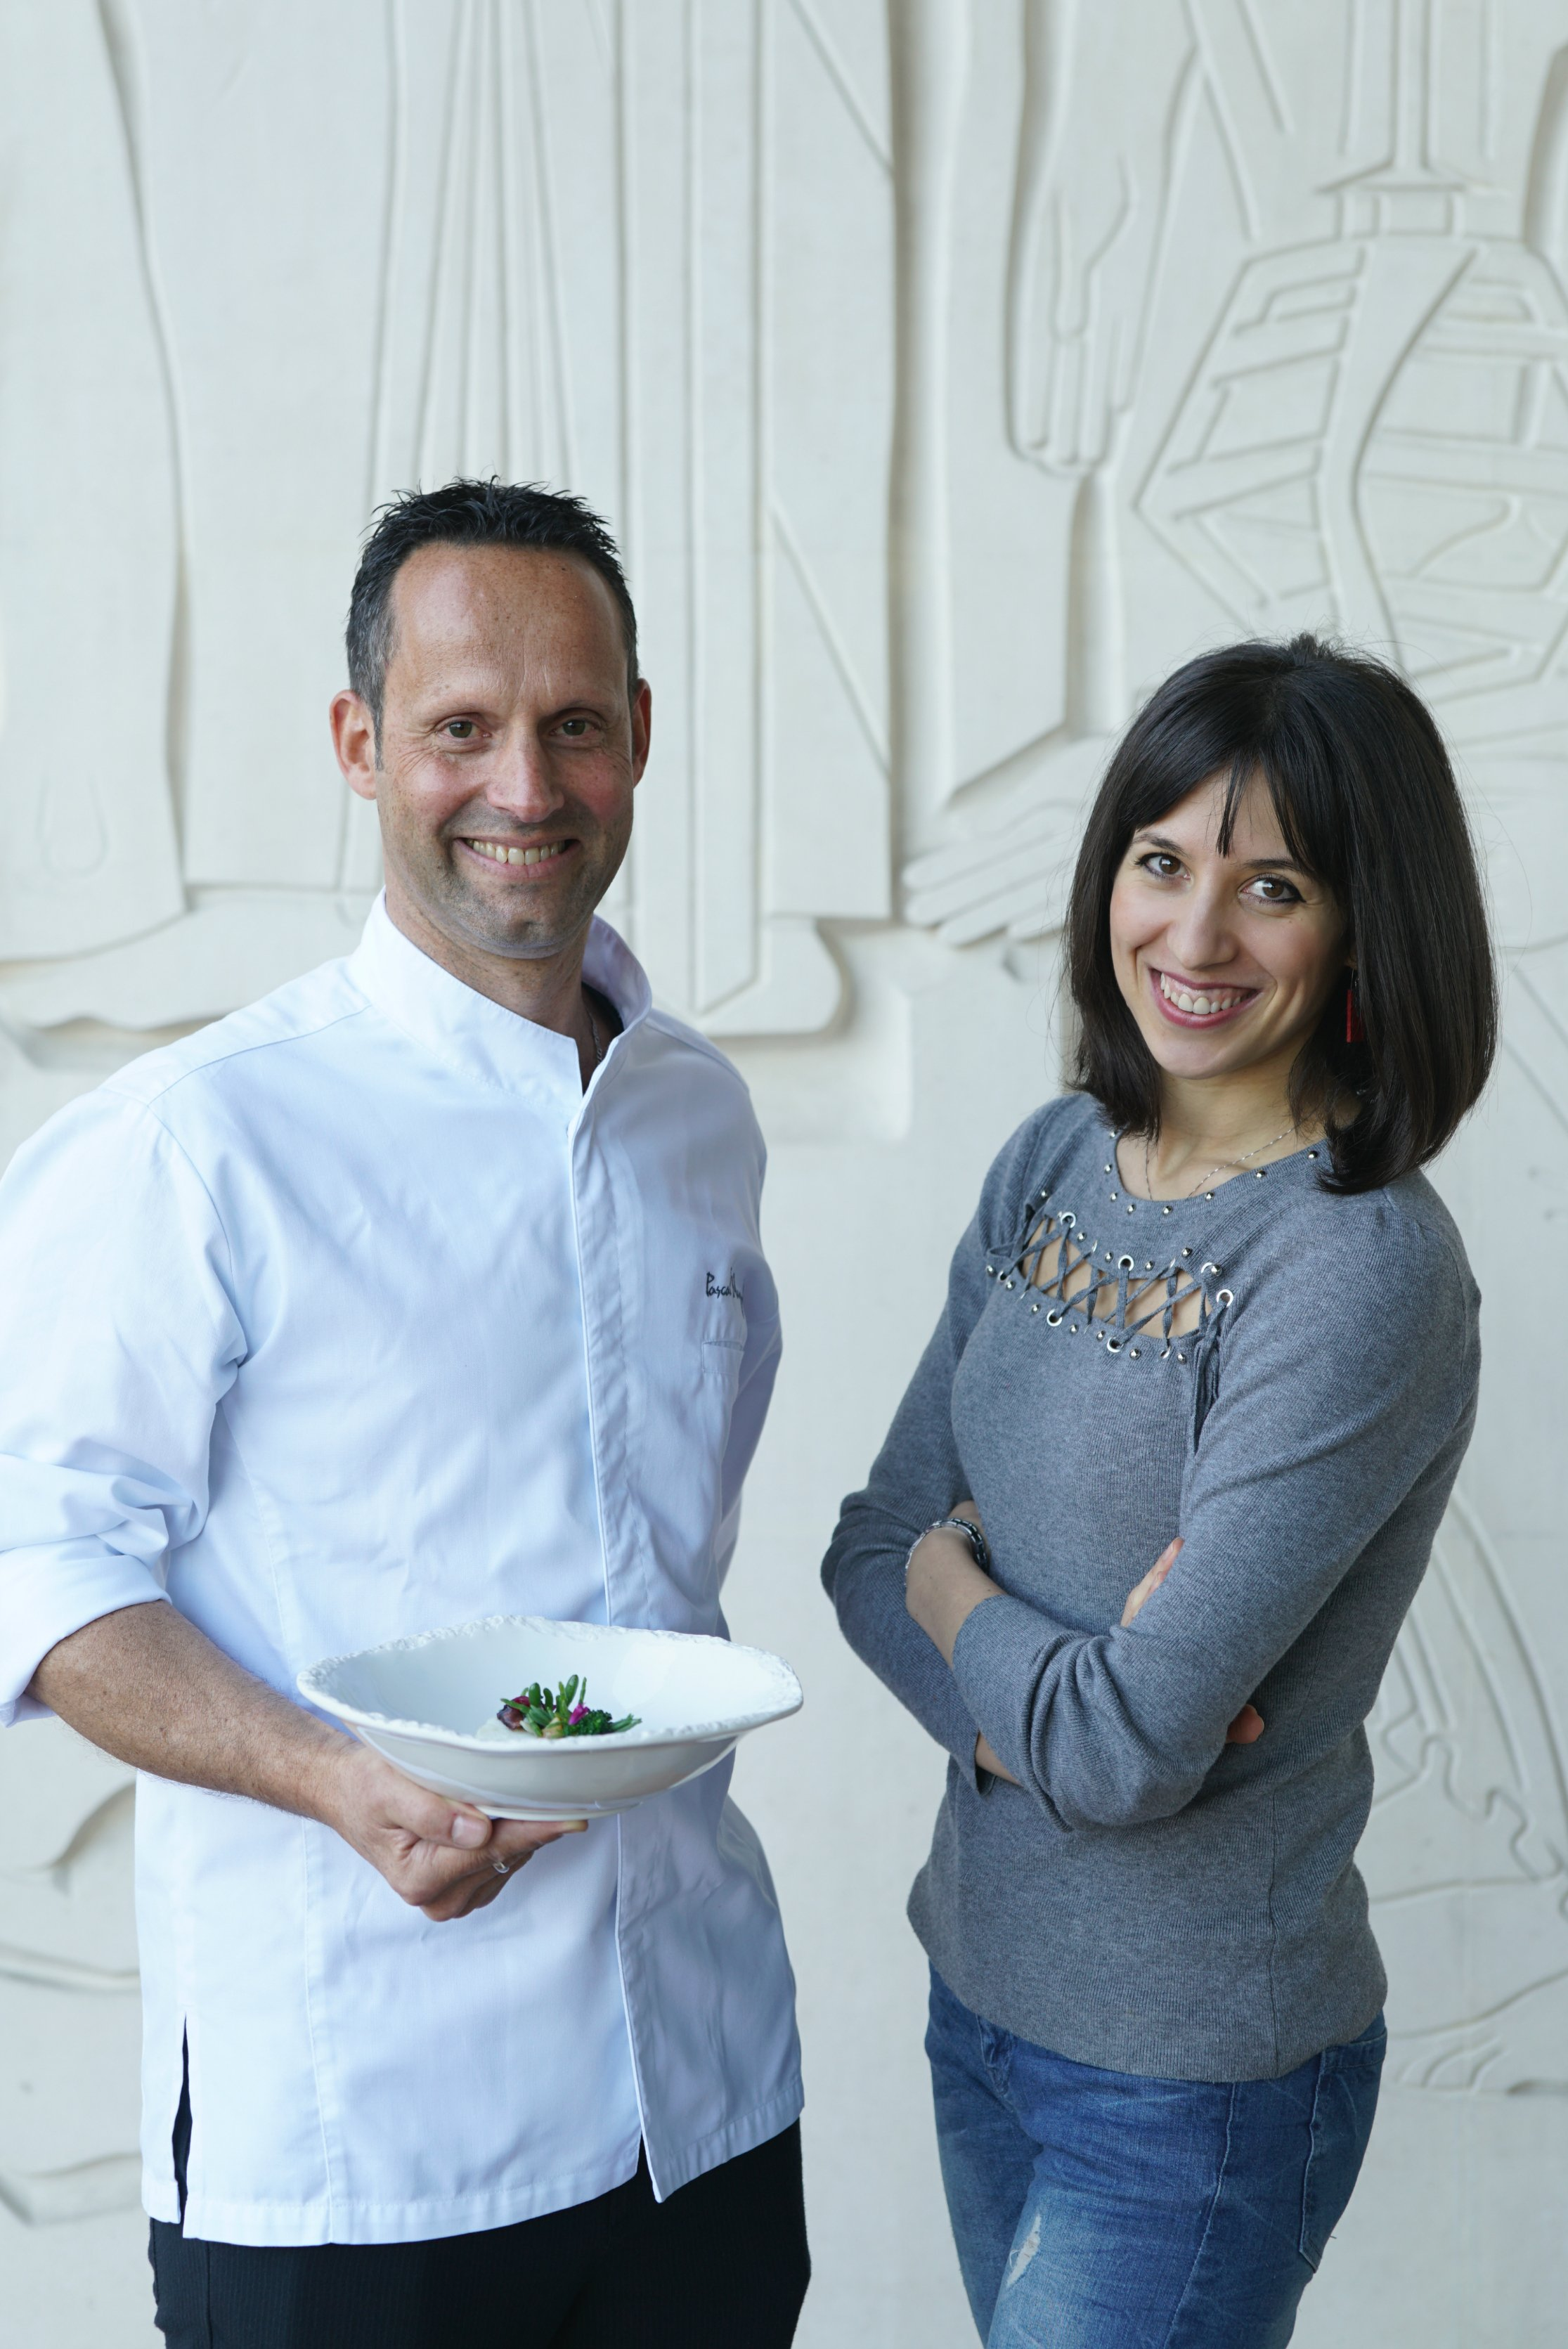 Ambra Torelli & Chef Pascal Meynard from the Four Seasons Lisbon 1